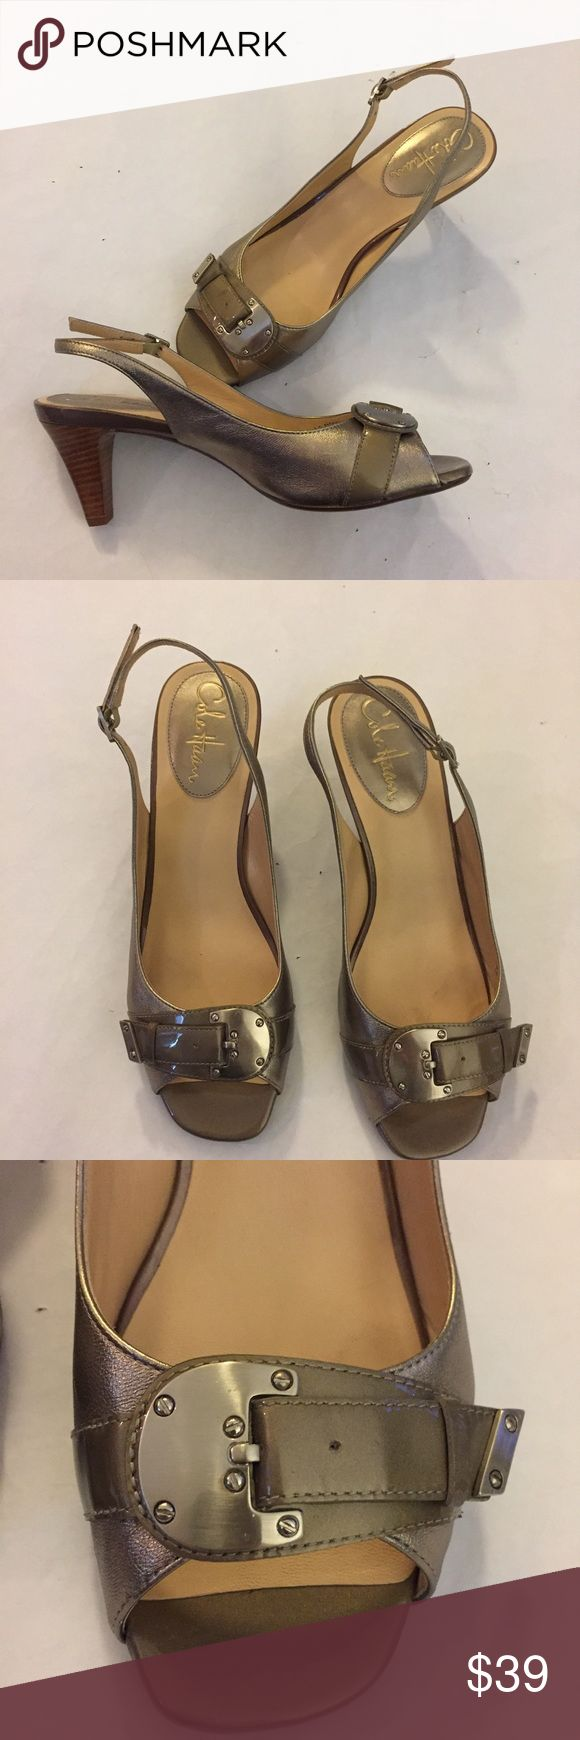 "NEW Cole Haan Nike Air Leather Pumps Heel Buckle NEW Cole Haan Nike Air Silver Leather Pumps Heel Silver Buckle Size 8 B BRAND NEW, NEVER WORN, designer shoes! Silver and Cole Haan brand with super cute buckle! They're adorable! Very comfortable. Size 8, B width.  Heel 2.5"".    /382/ Cole Haan Shoes Heels"